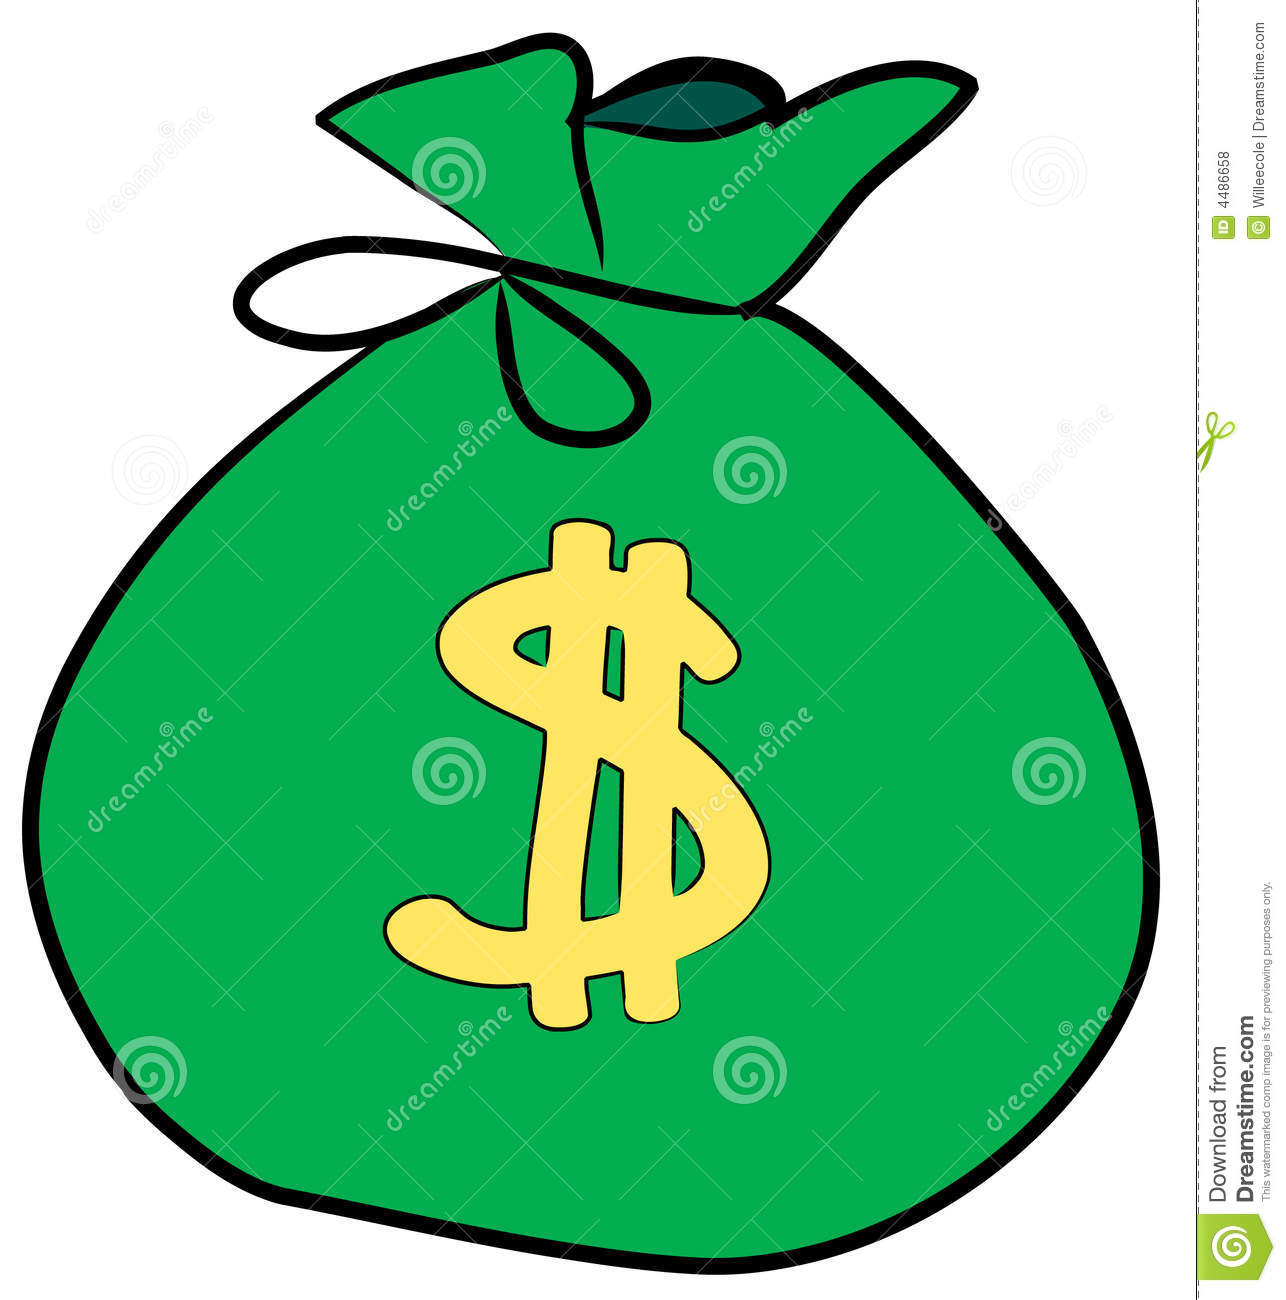 Bag With Money Sign Cartoon: Bag Of Money Stock Vector. Illustration Of Exchange, Rate